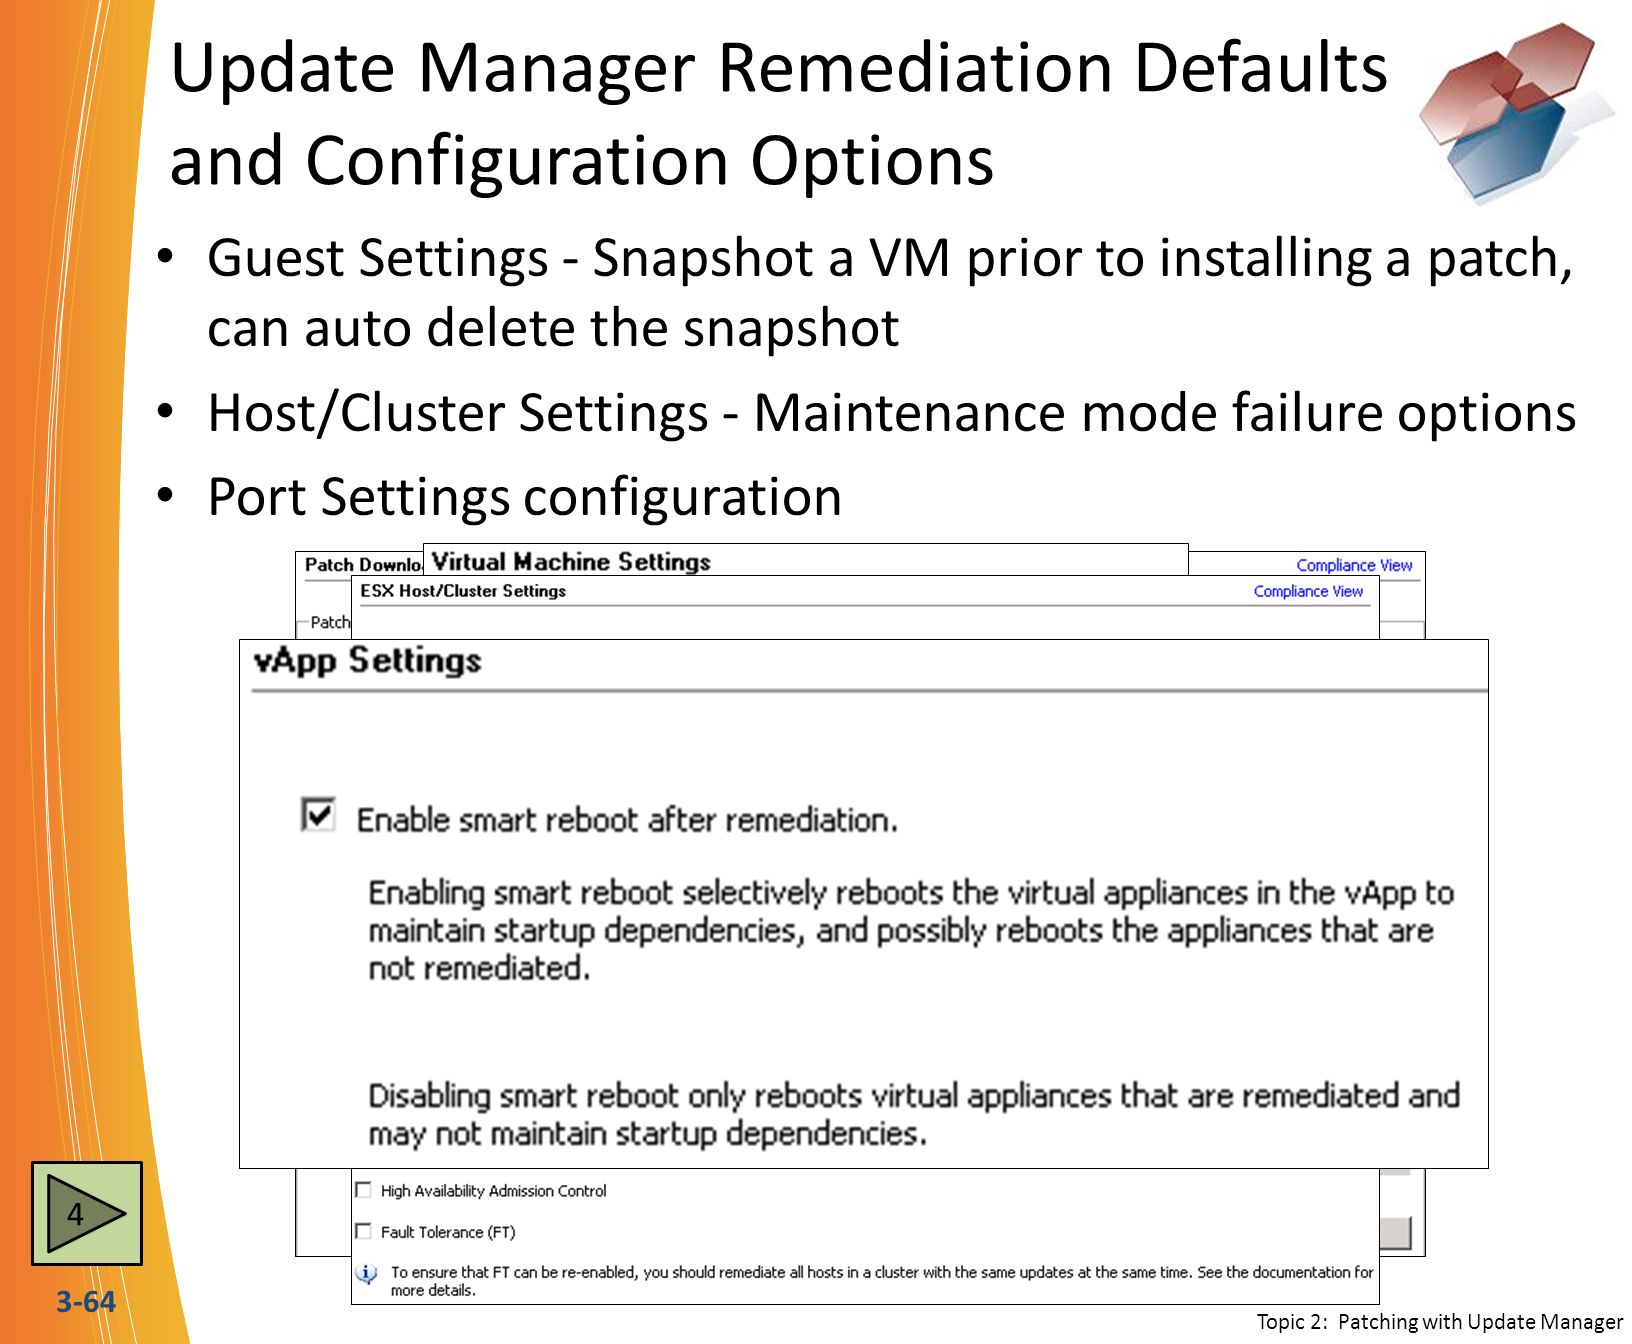 Update Manager Remediation Defaults and Configuration Options